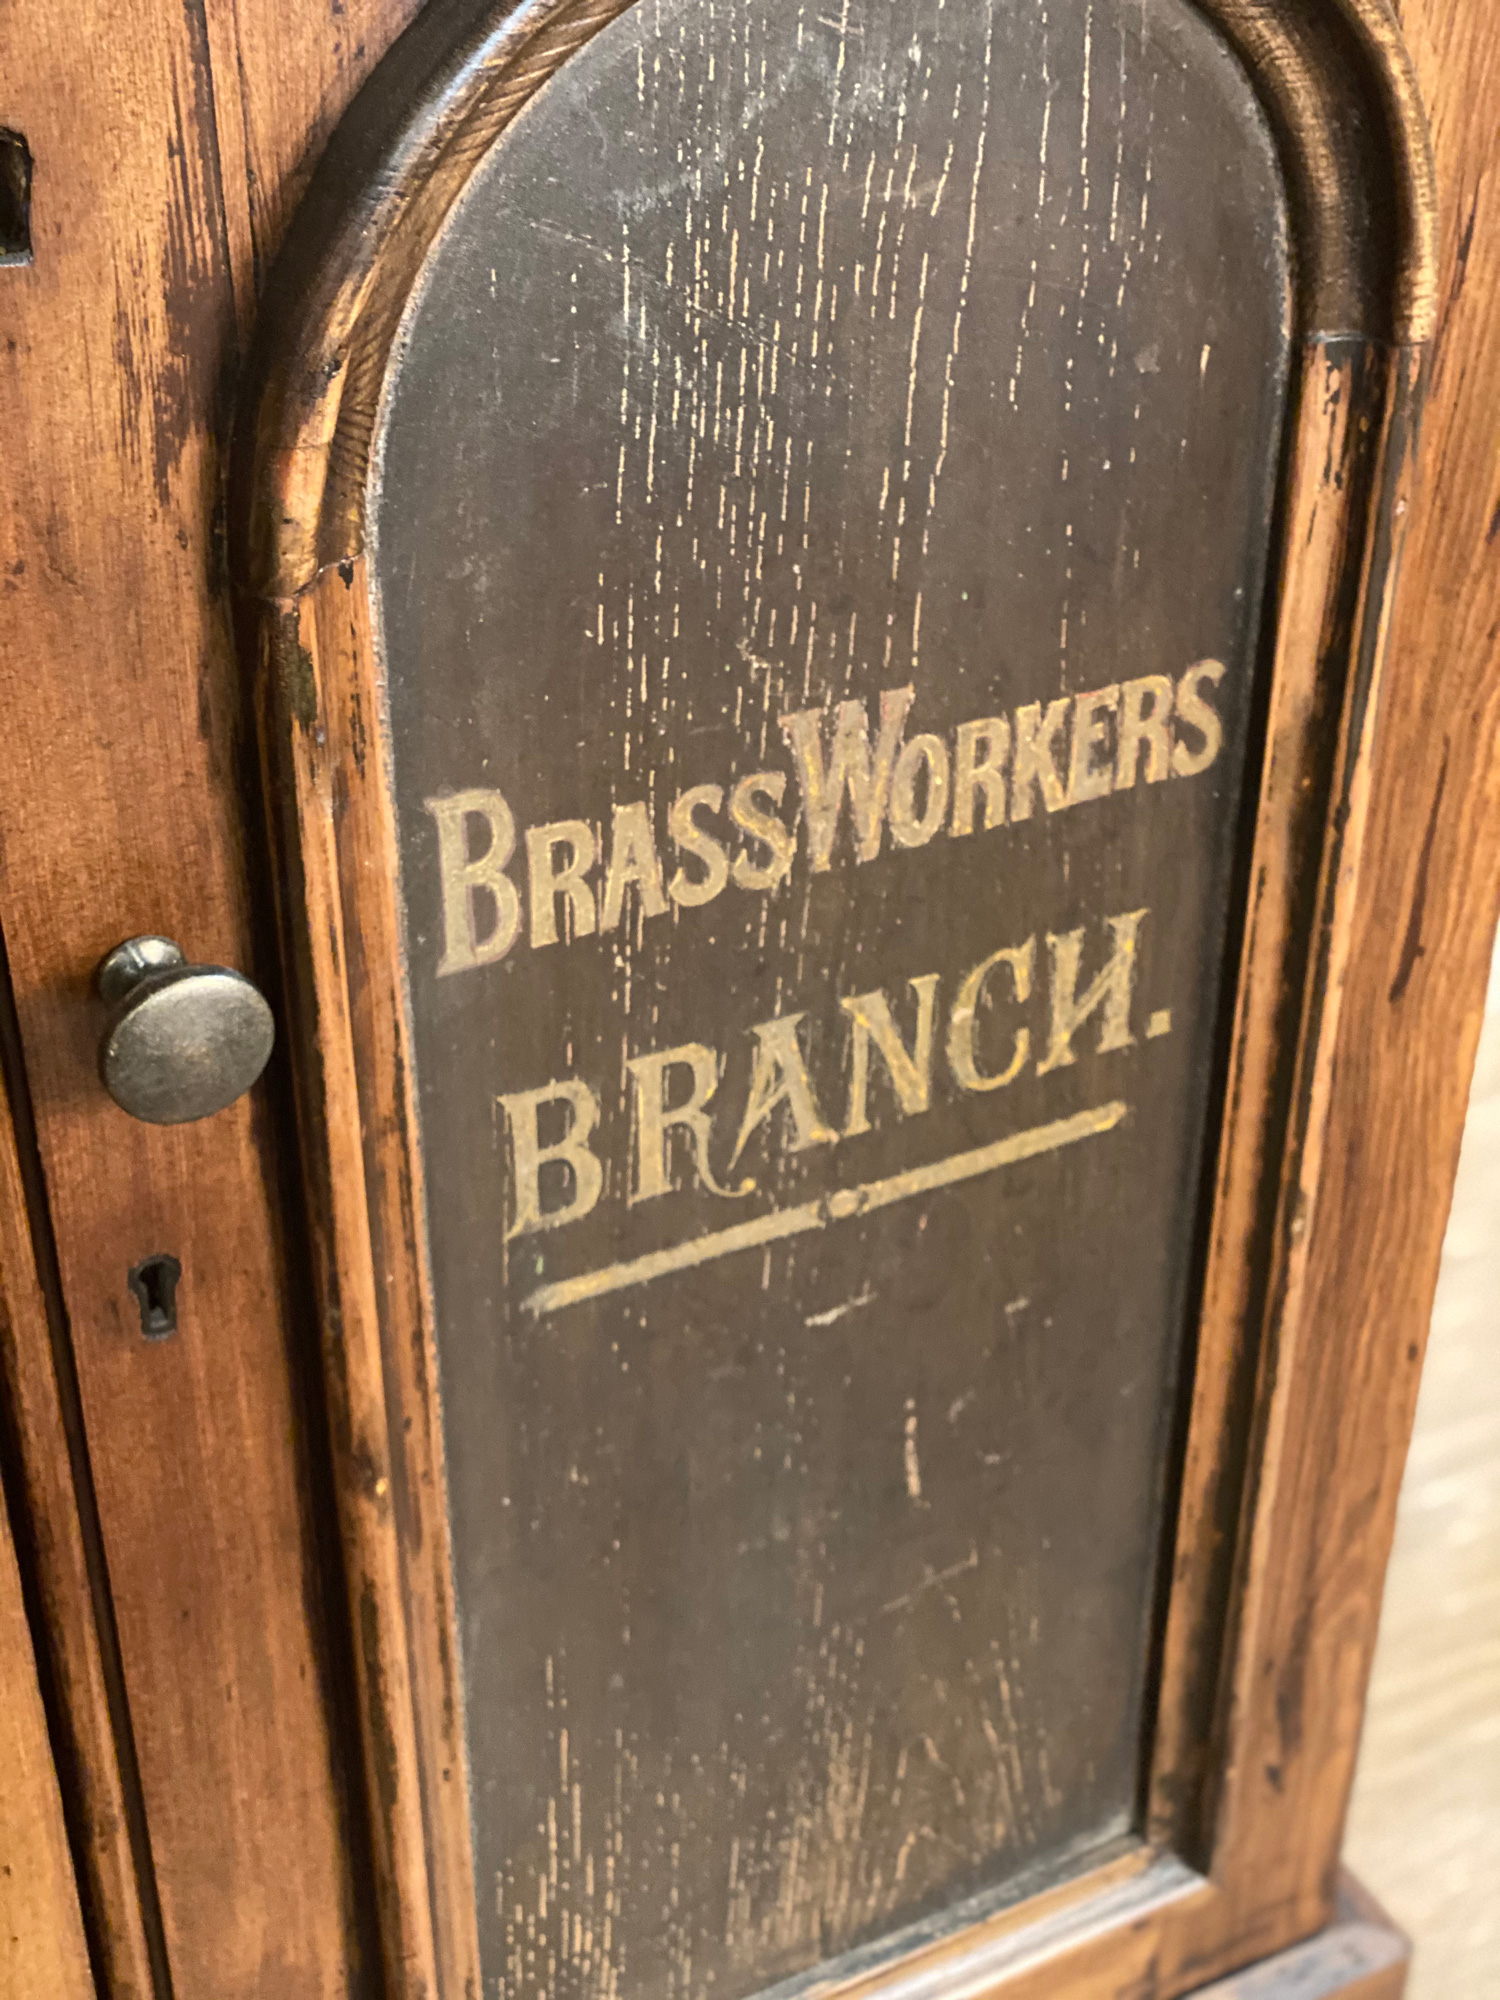 BrassWorkers detail on vintage sideboard